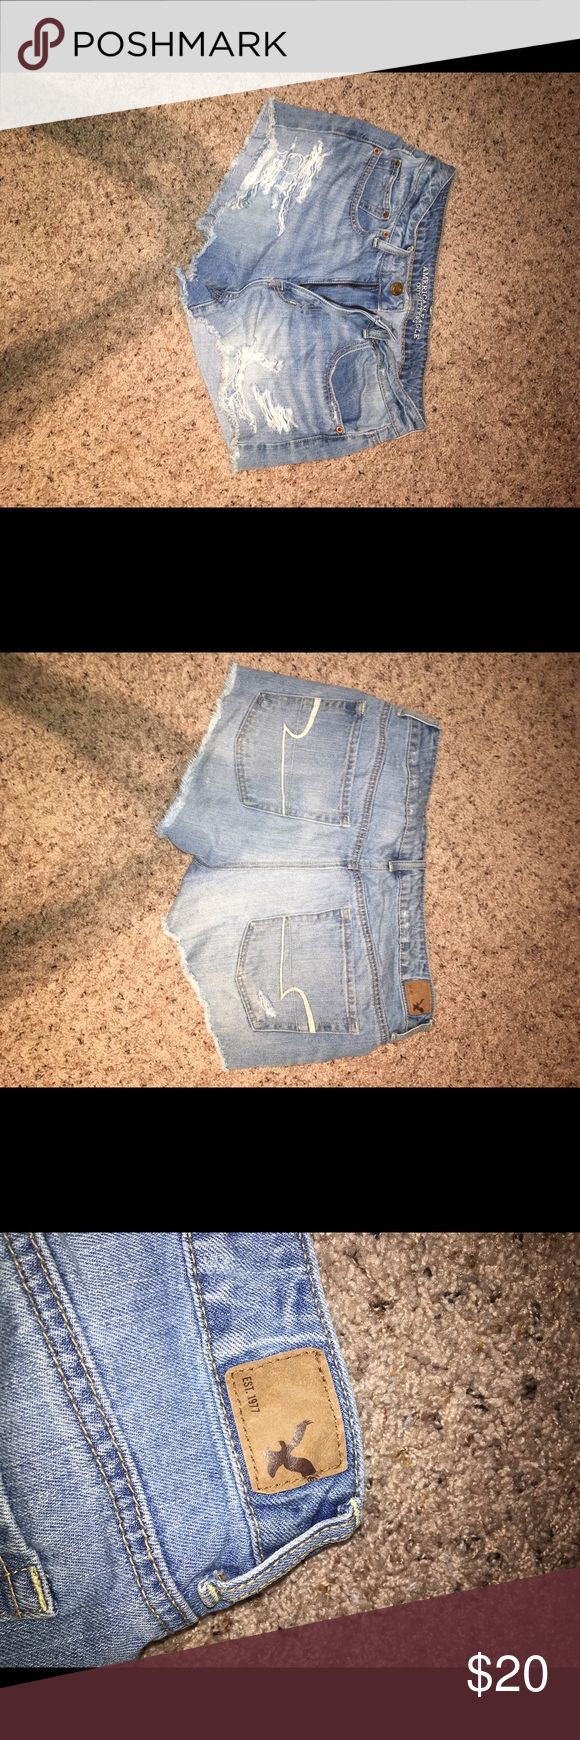 LIGHTLY WORN AMERICAN EAGLE SHORTS SIZE 12 So cute and comfy and are a great touch to summer clothing American Eagle Outfitters Shorts Jean Shorts